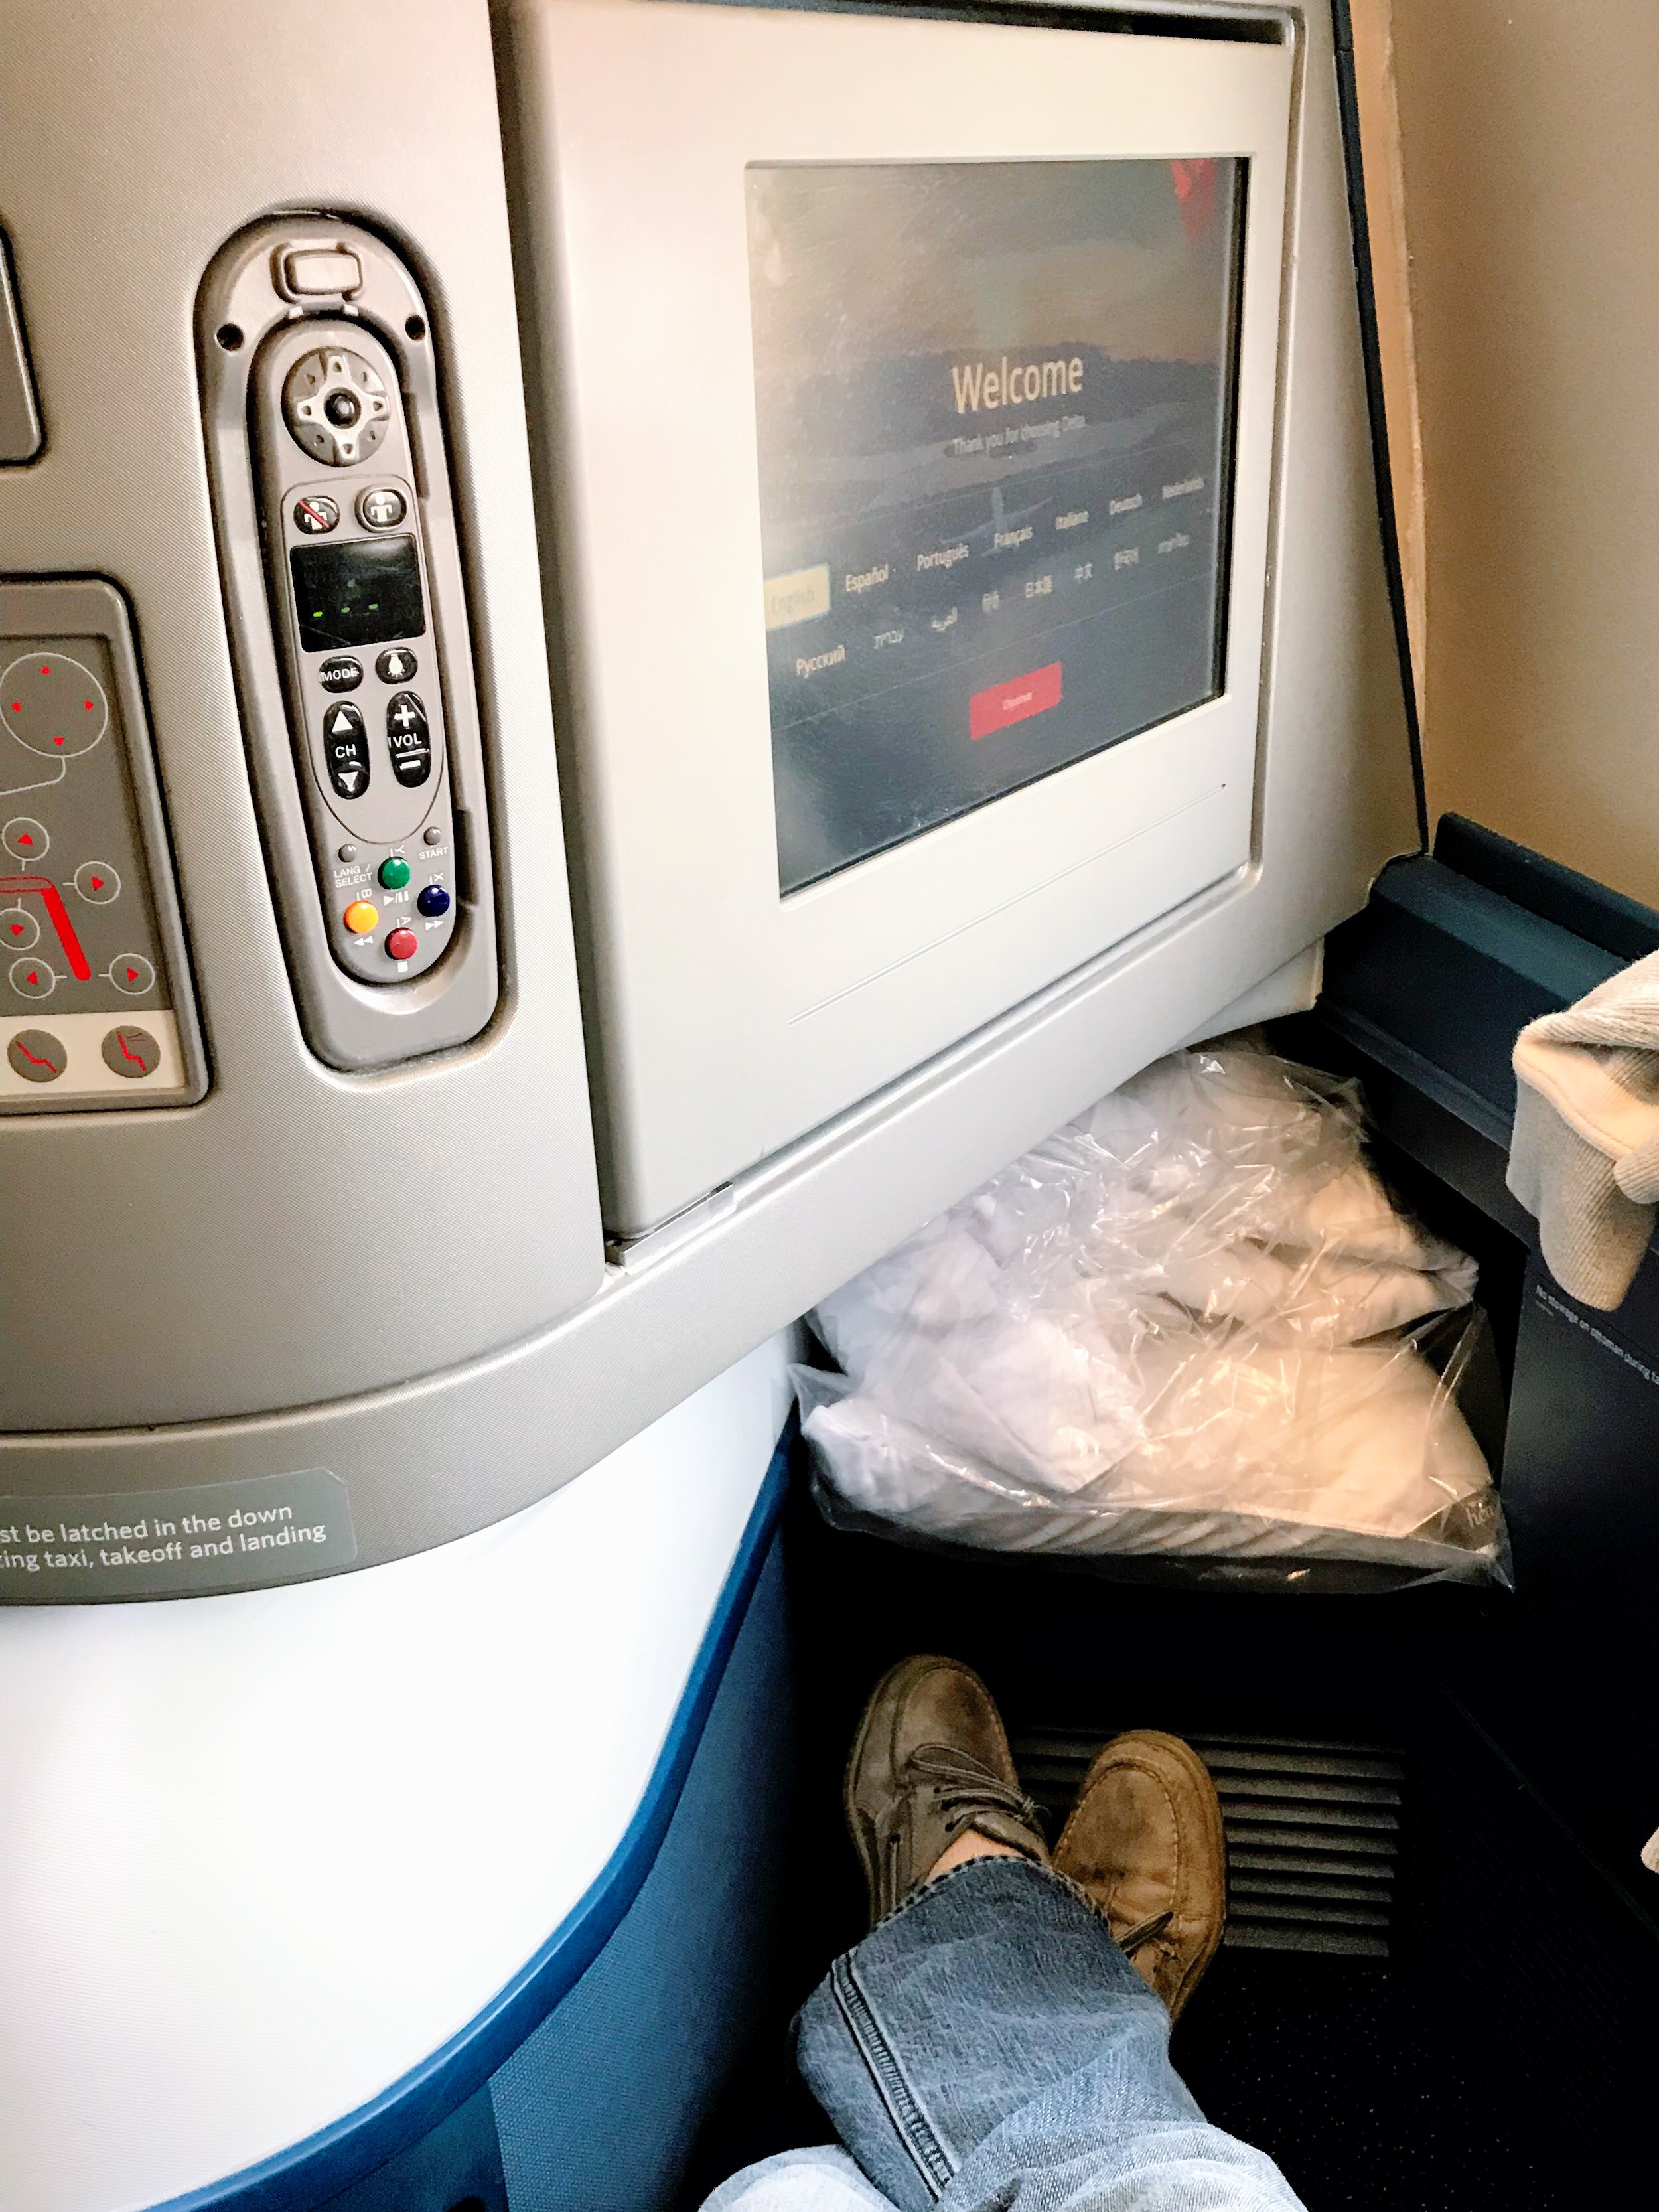 You can store your duvet and pillow on the foot rest when you aren't using them and won't sacrifice legroom. I'm 6' and couldn't reach the foot rest.